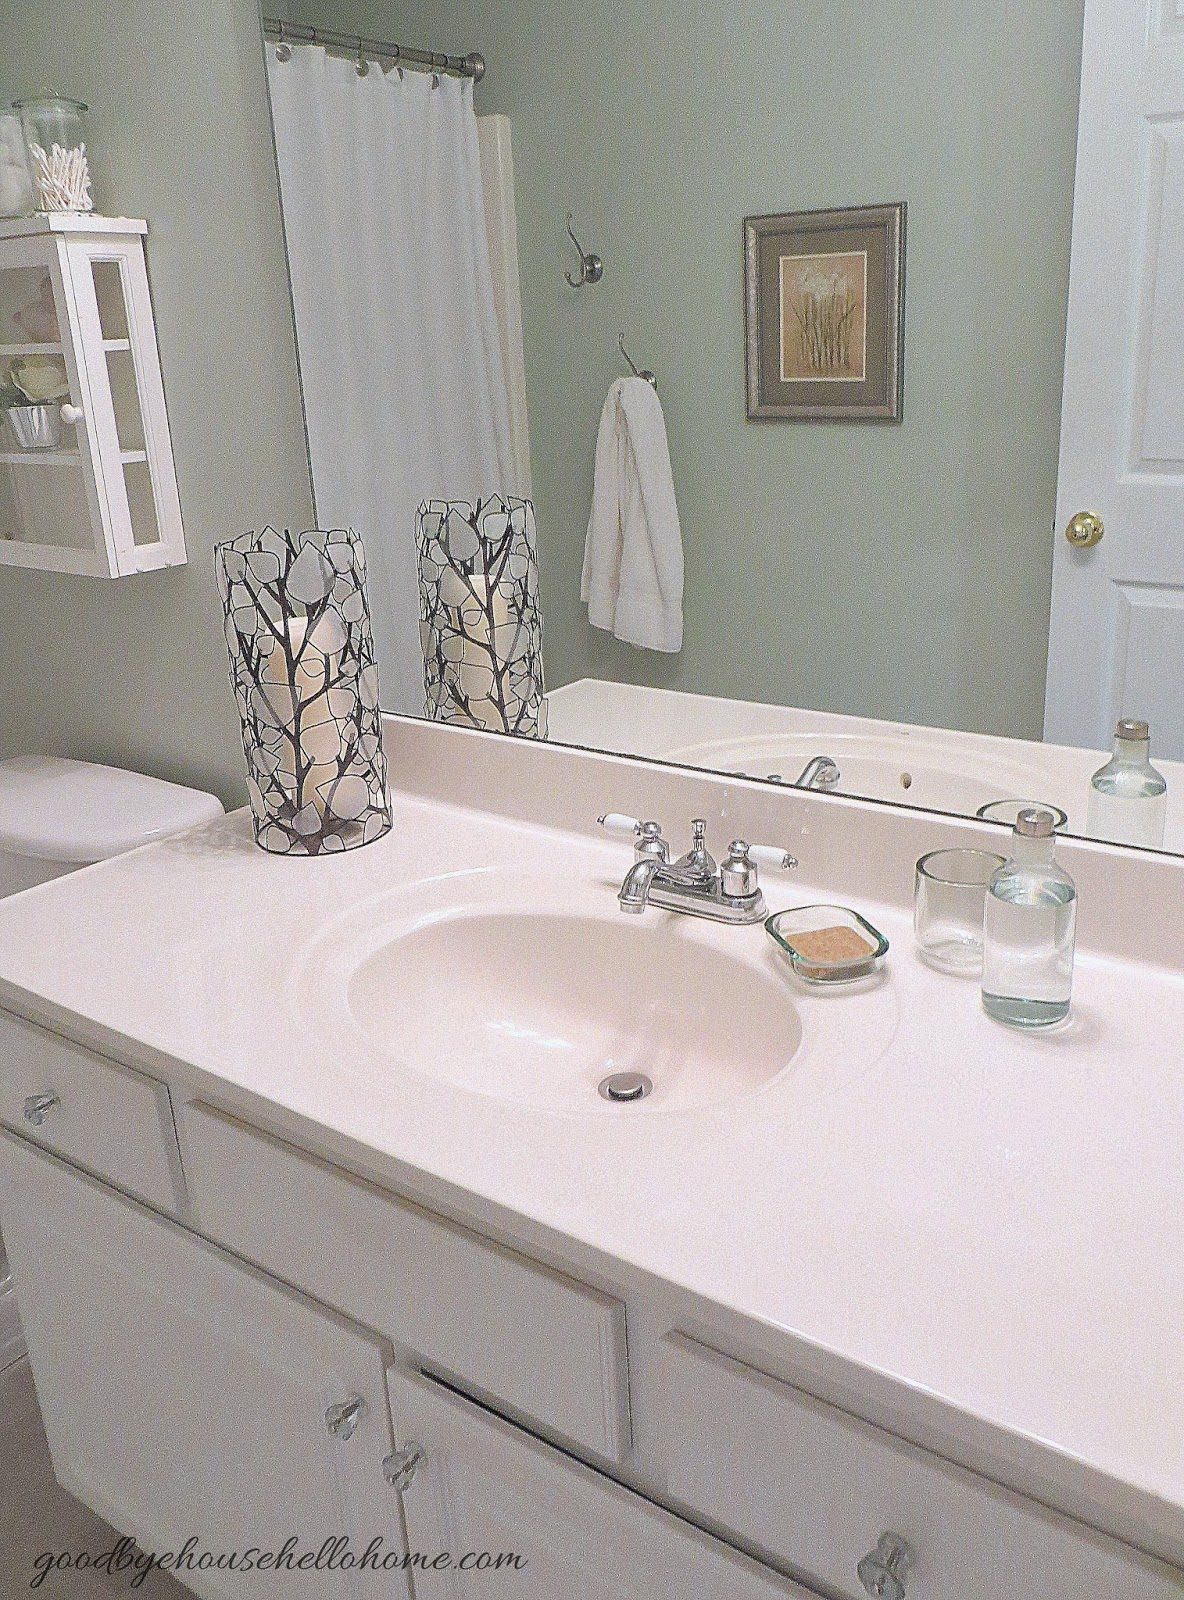 How To Stage A Bathroom on stage a garage, stage a home, stage a desk, stage a bathtub, home bathroom,